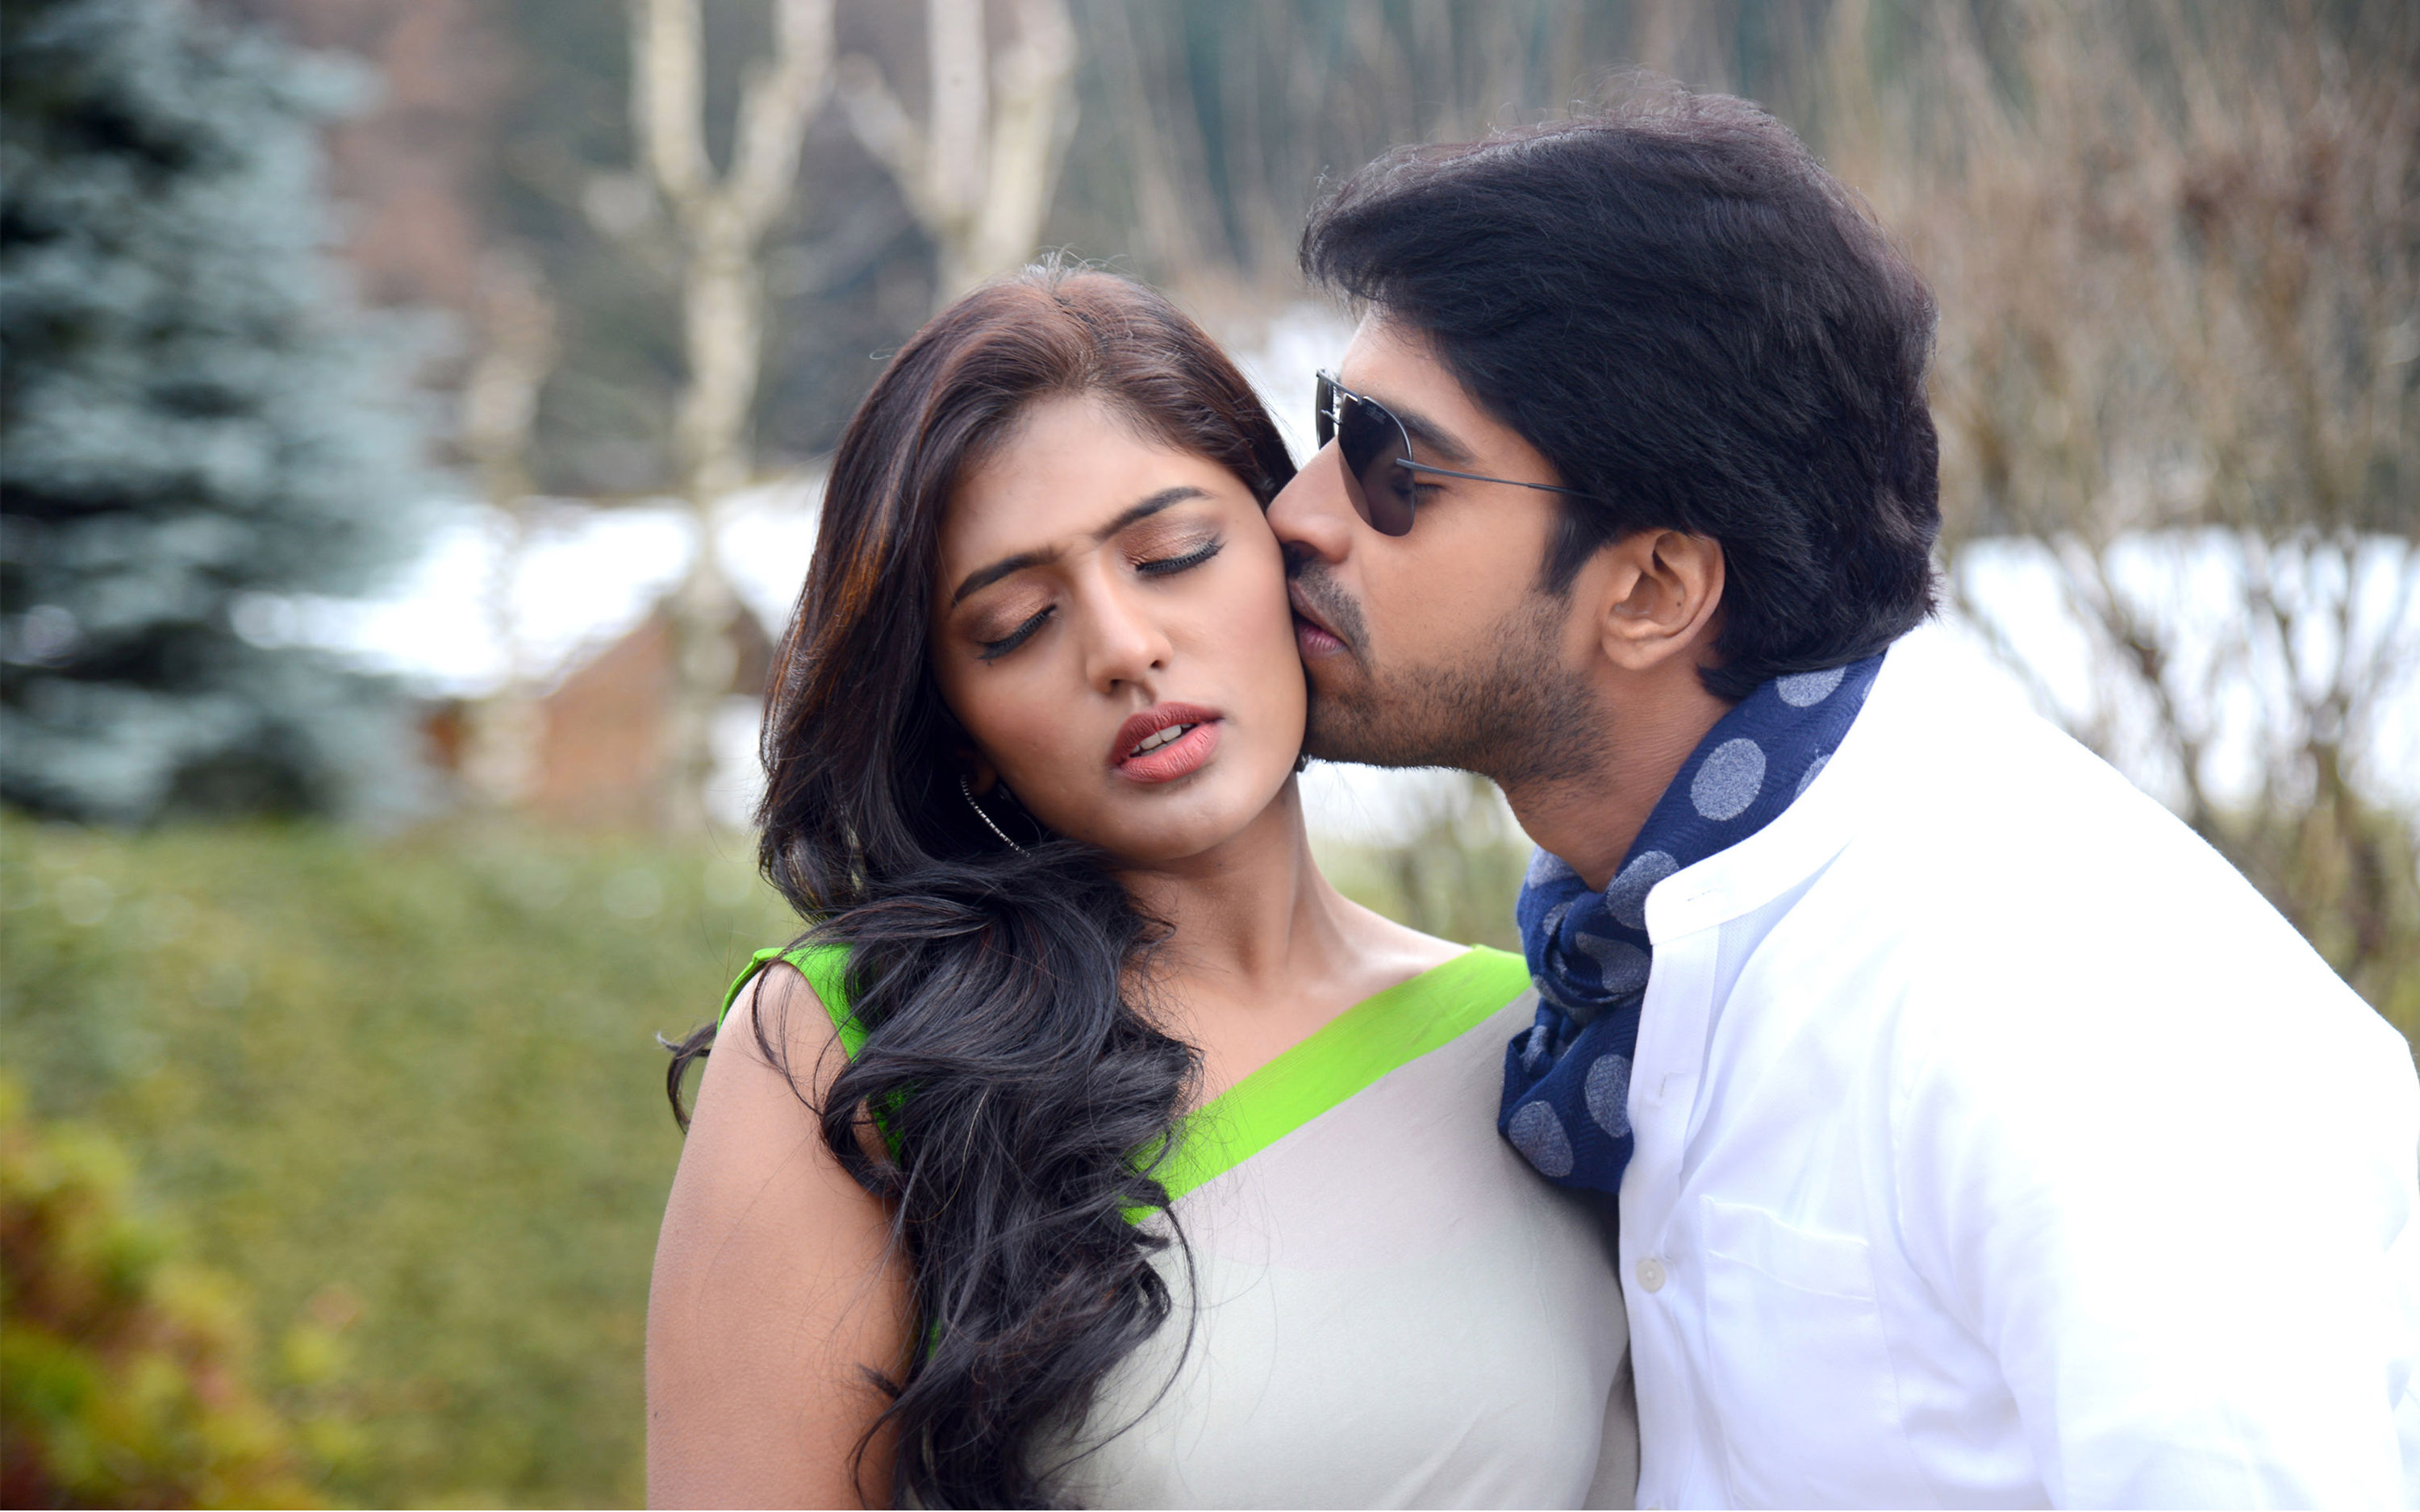 Hd Sad Shayari Girl Wallpaper Gentle Kiss On The Cheek Allari Naresh Bandipotu Latest